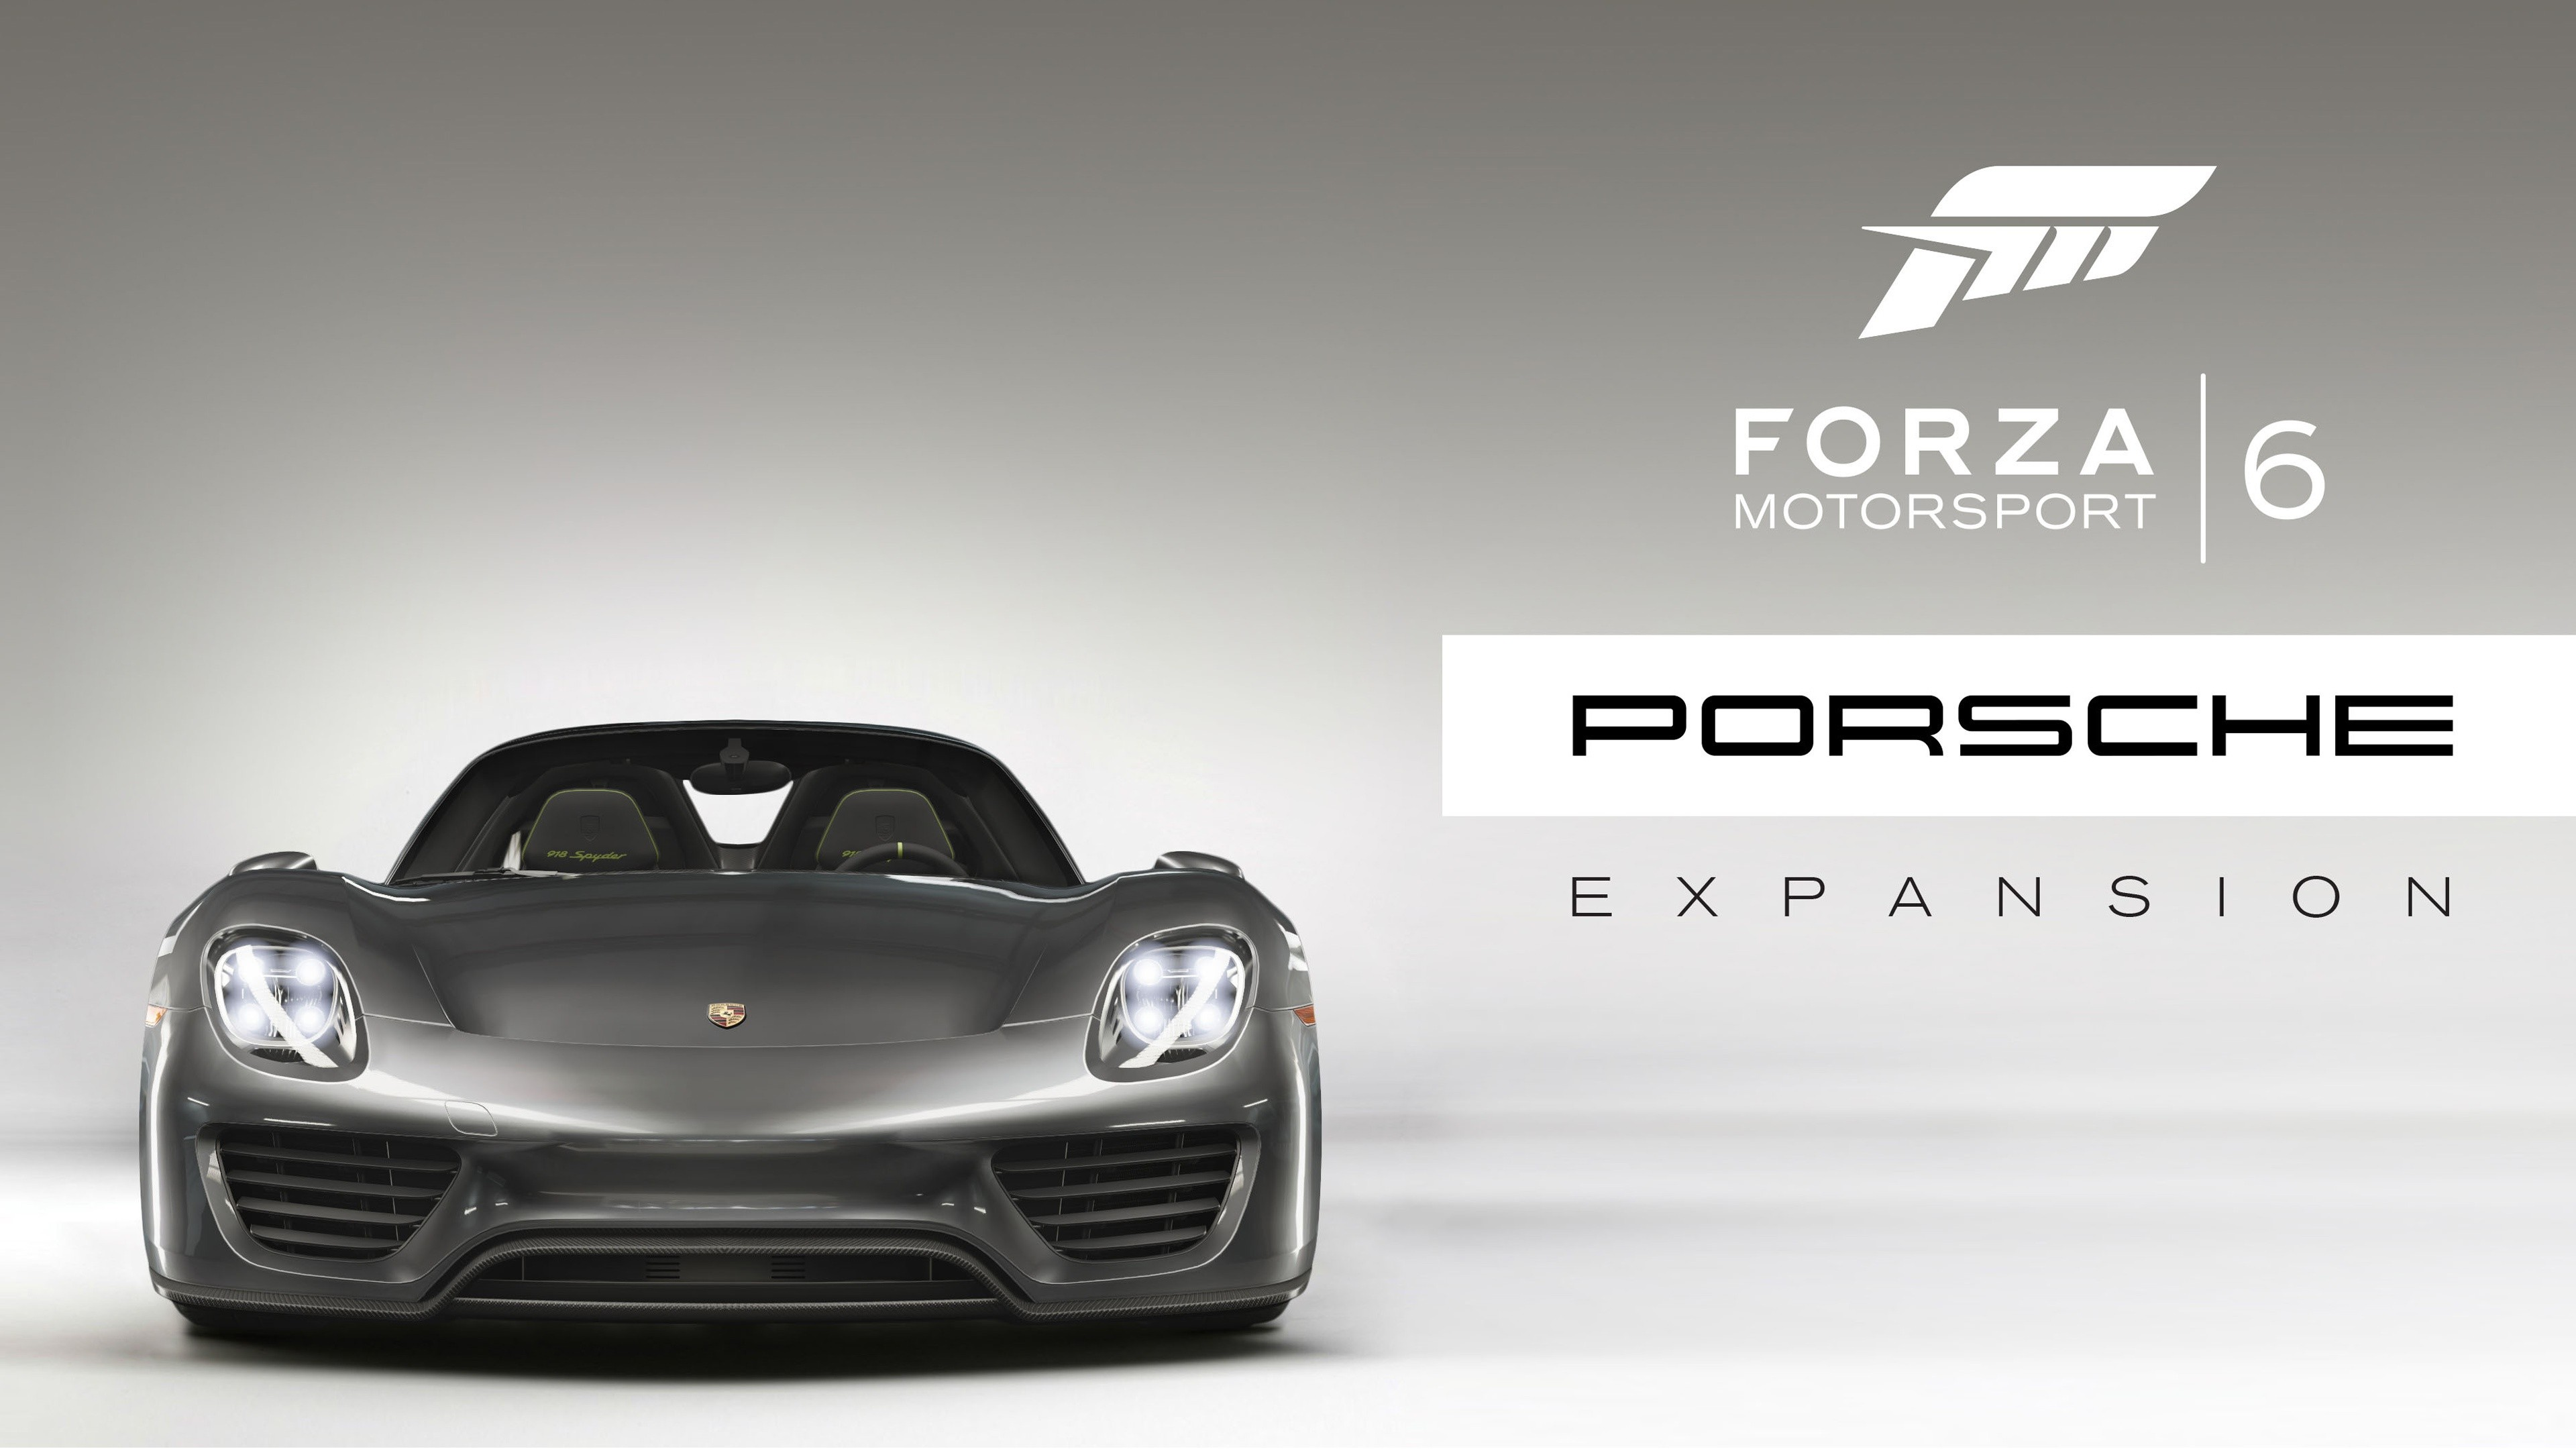 Wallpaper Forza Motorsport 6 Apex Porsche Expansion